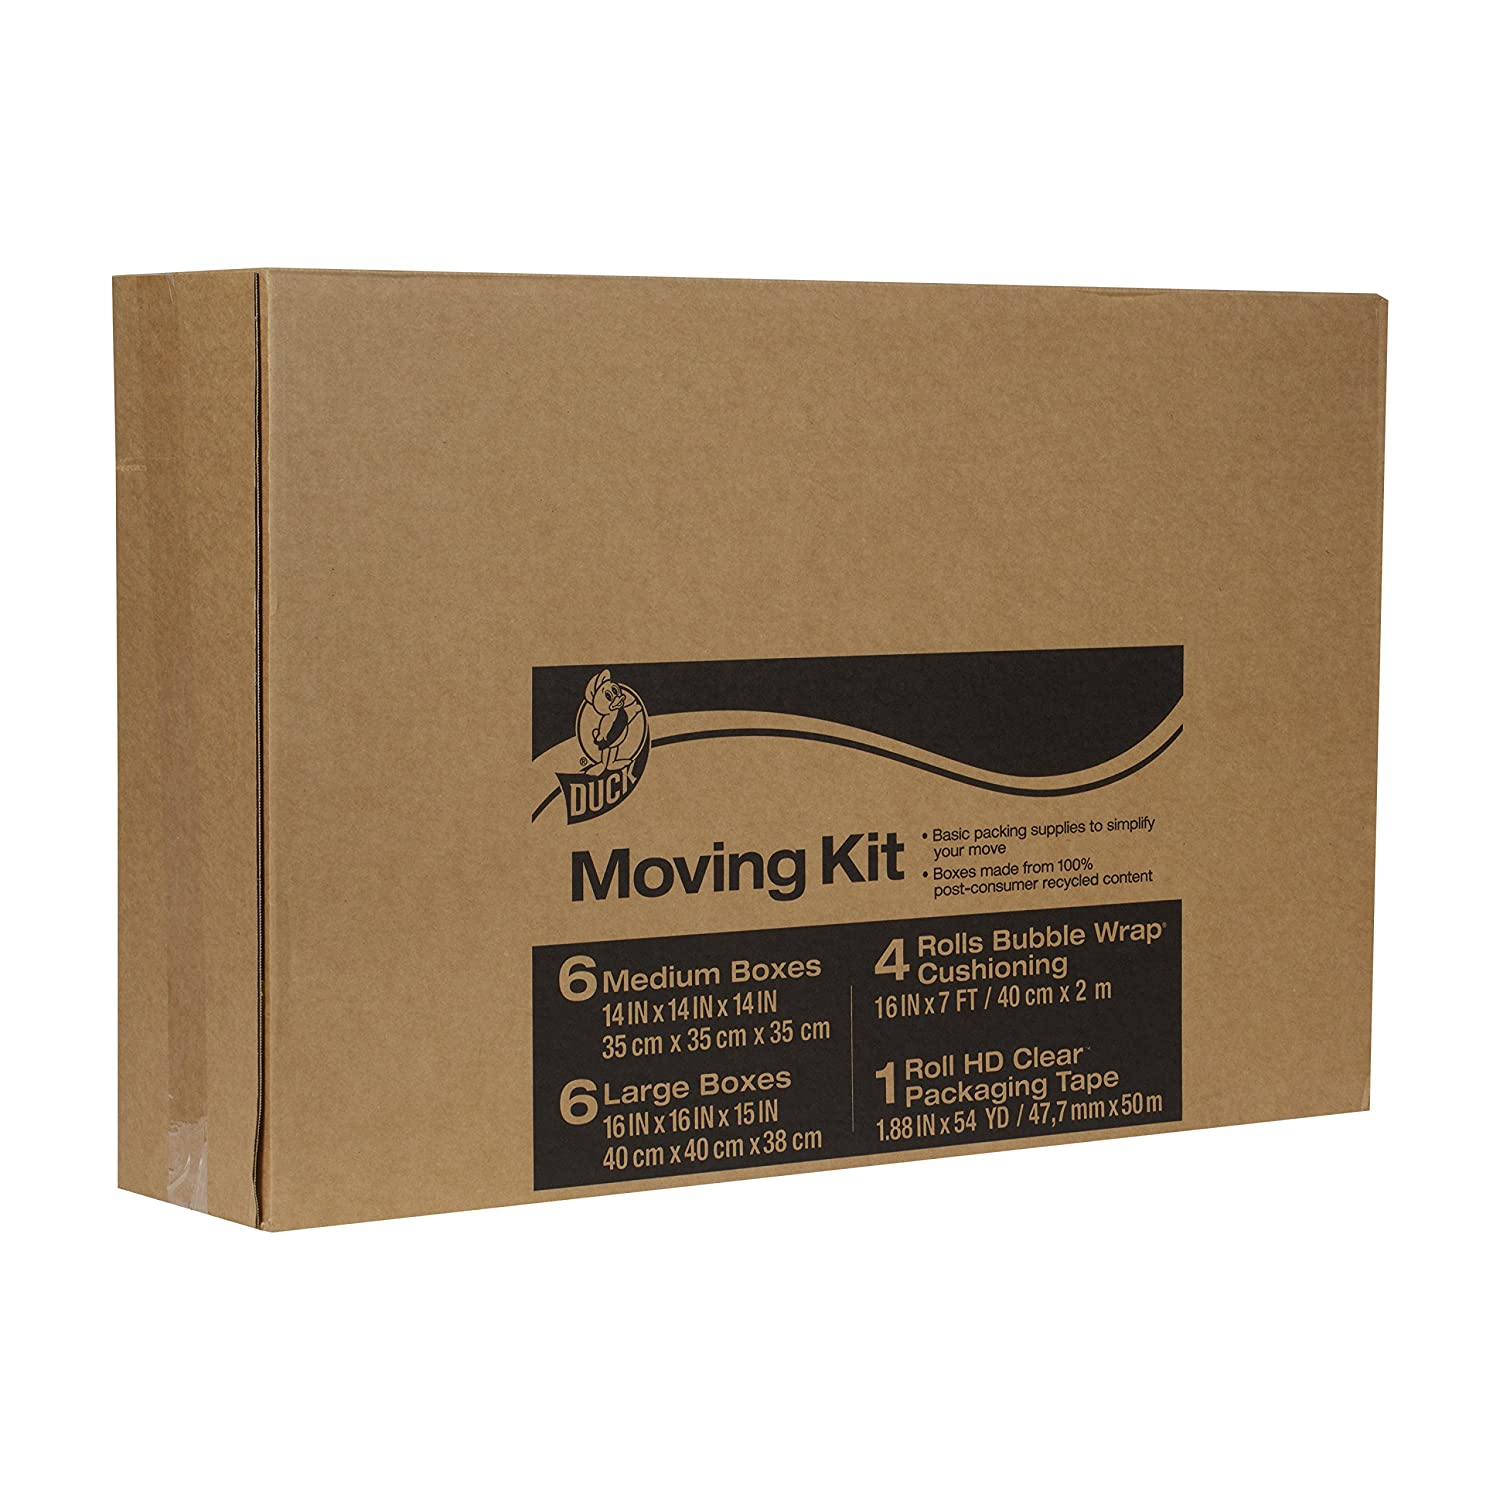 Amazon Duck Brand Moving Kit with 12 Boxes 4 Rolls Bubble